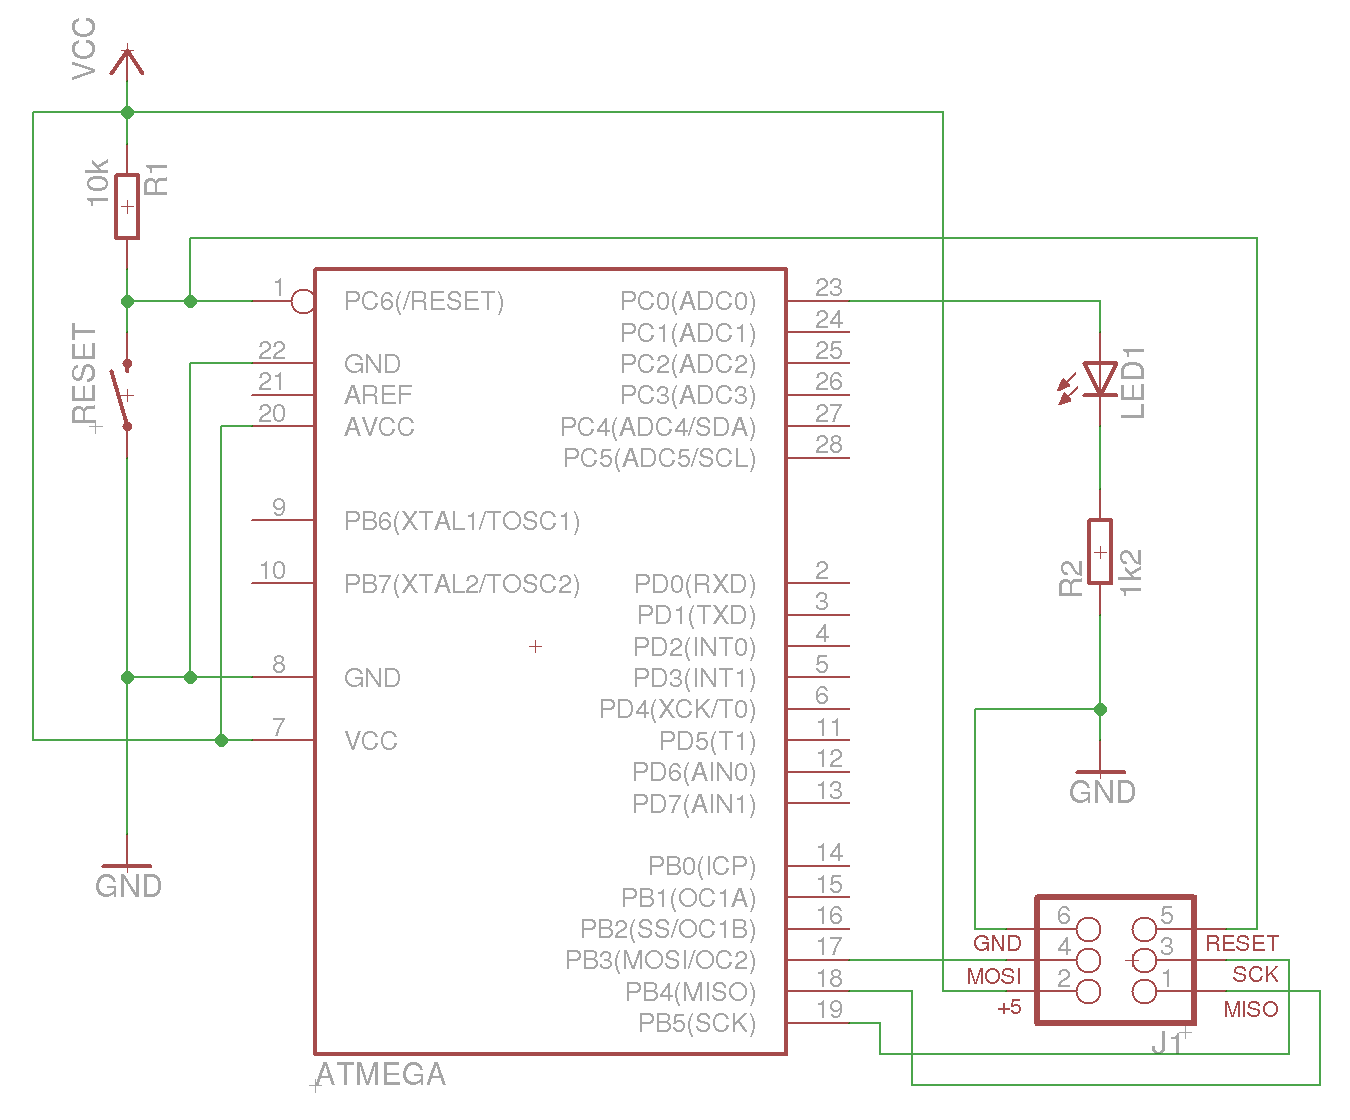 Getting Started With Atmel Avrs On Linux Dream Dimensions Circuit Diagram Software Microcontrollers Under Gnu Debian In Particular It Covers All Steps Starting The Prerequisites Setting Up A Minimal